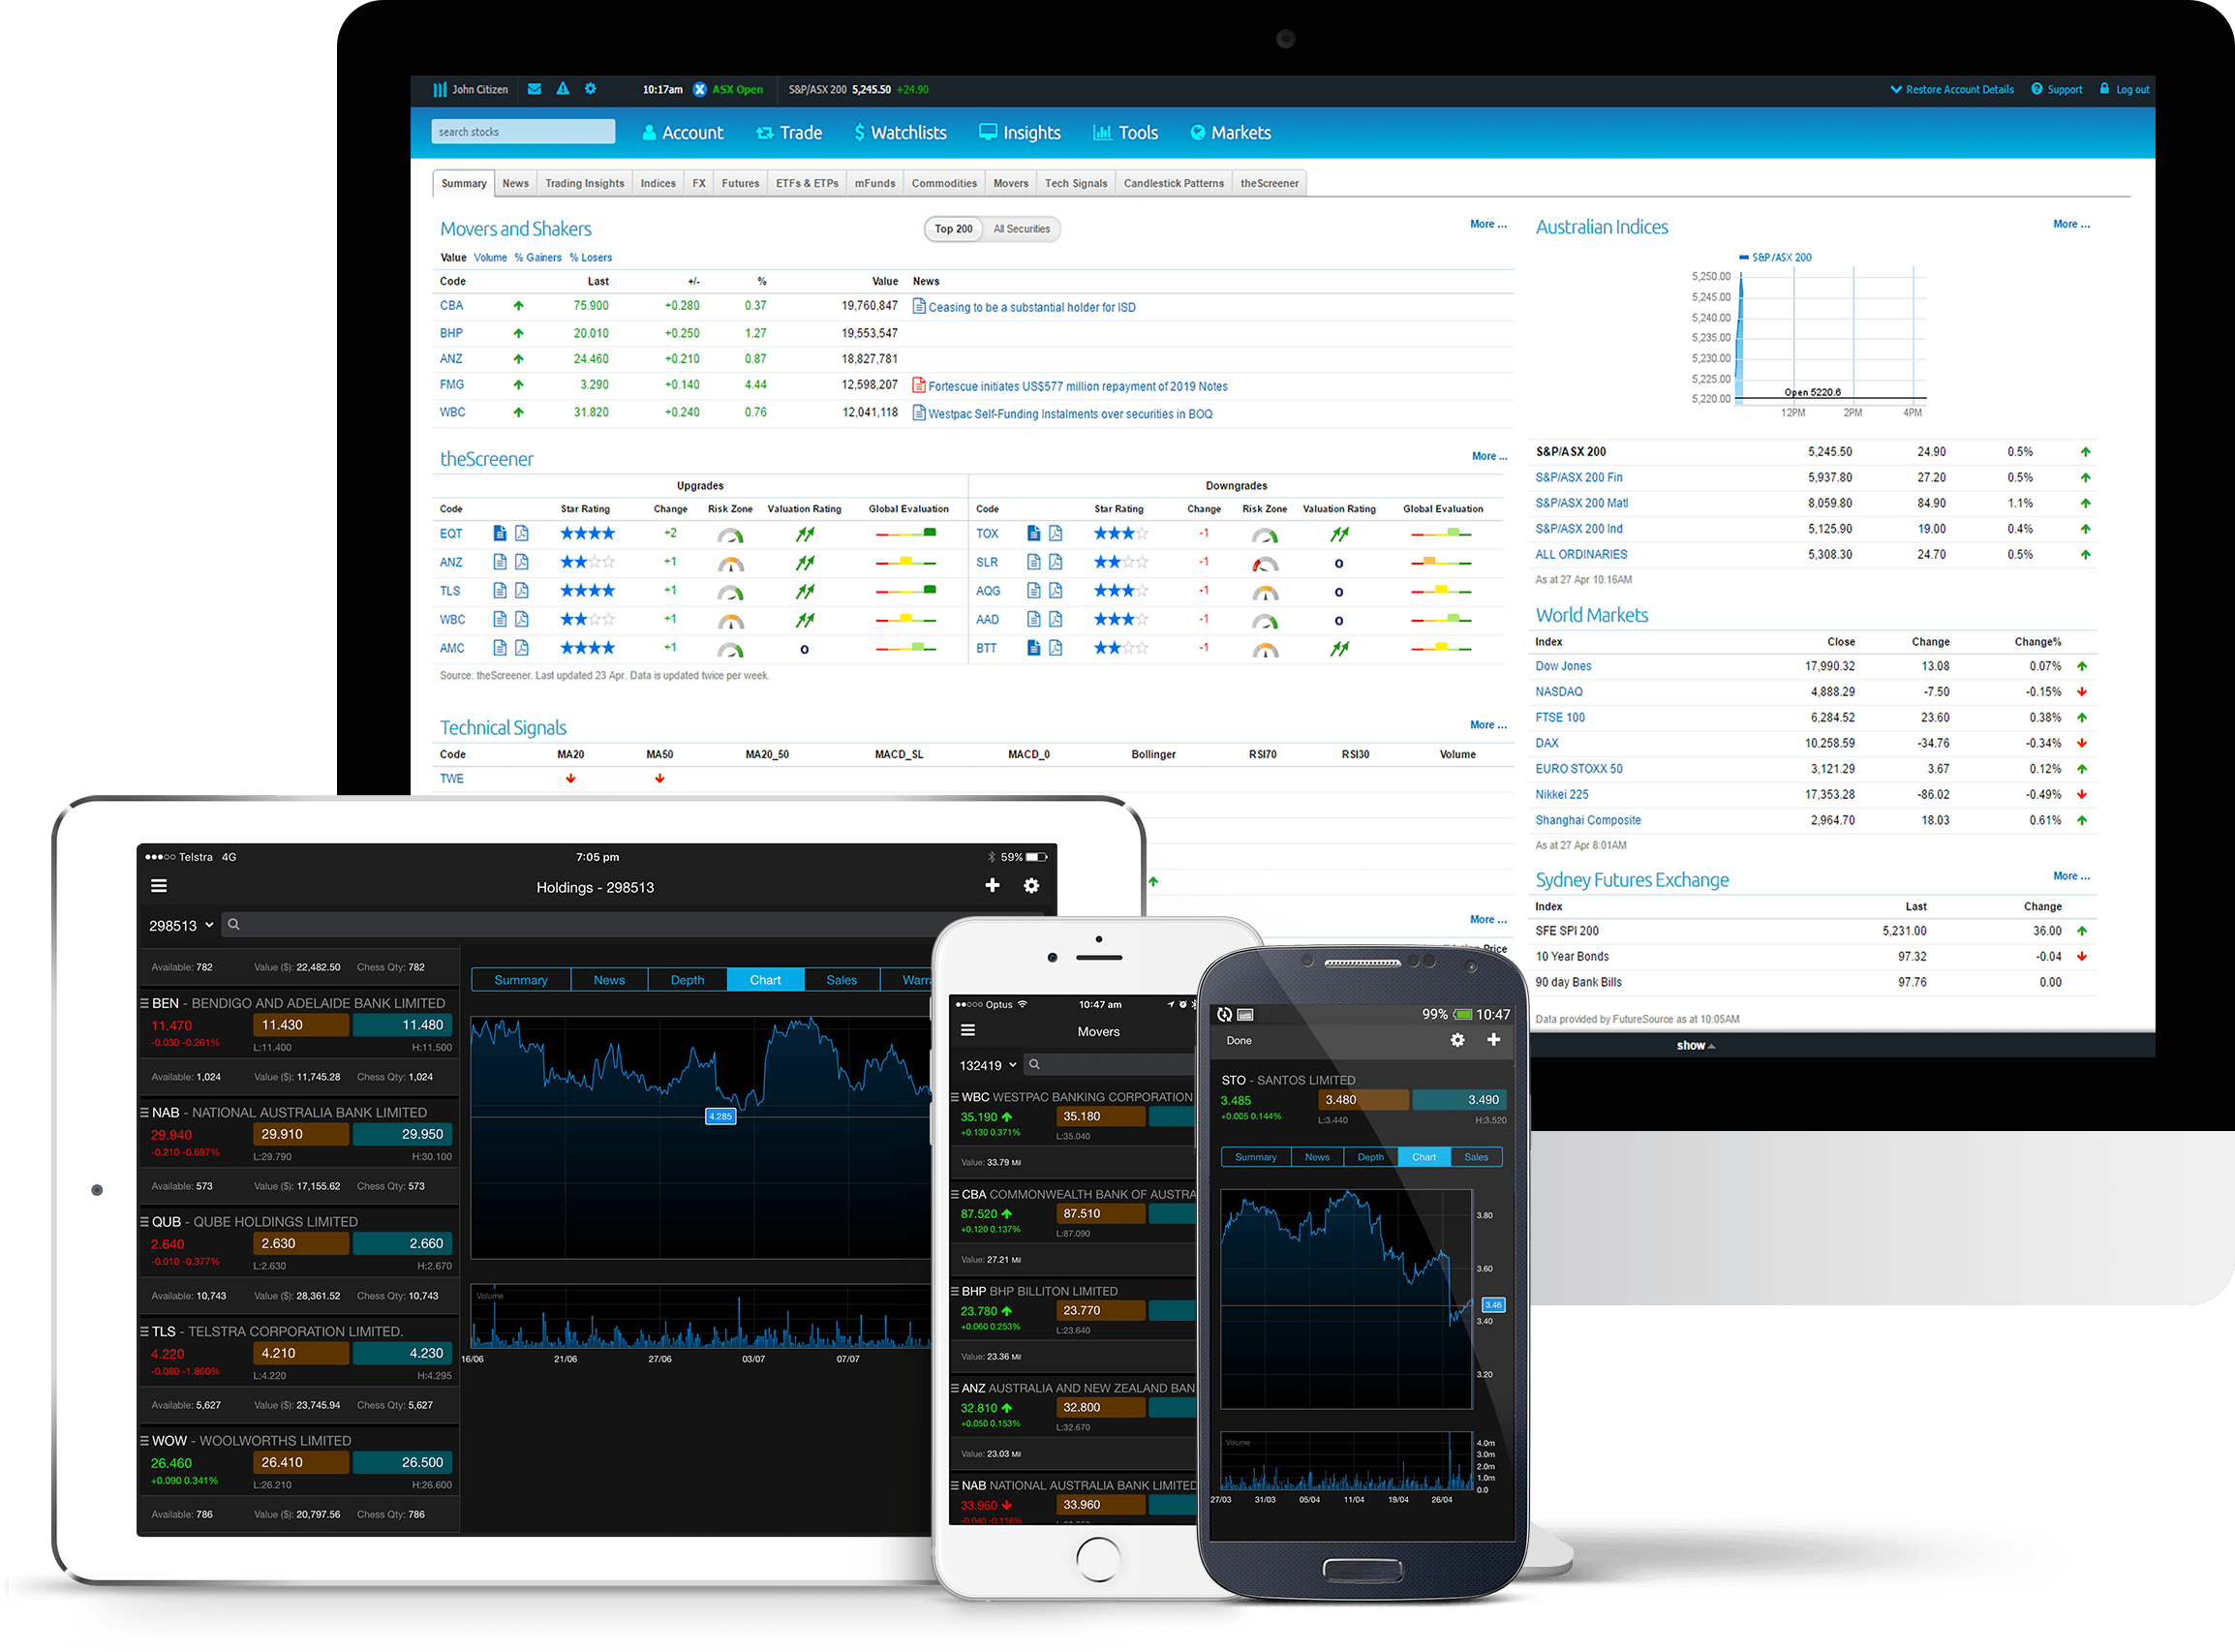 Trading platform for austrlia us markets